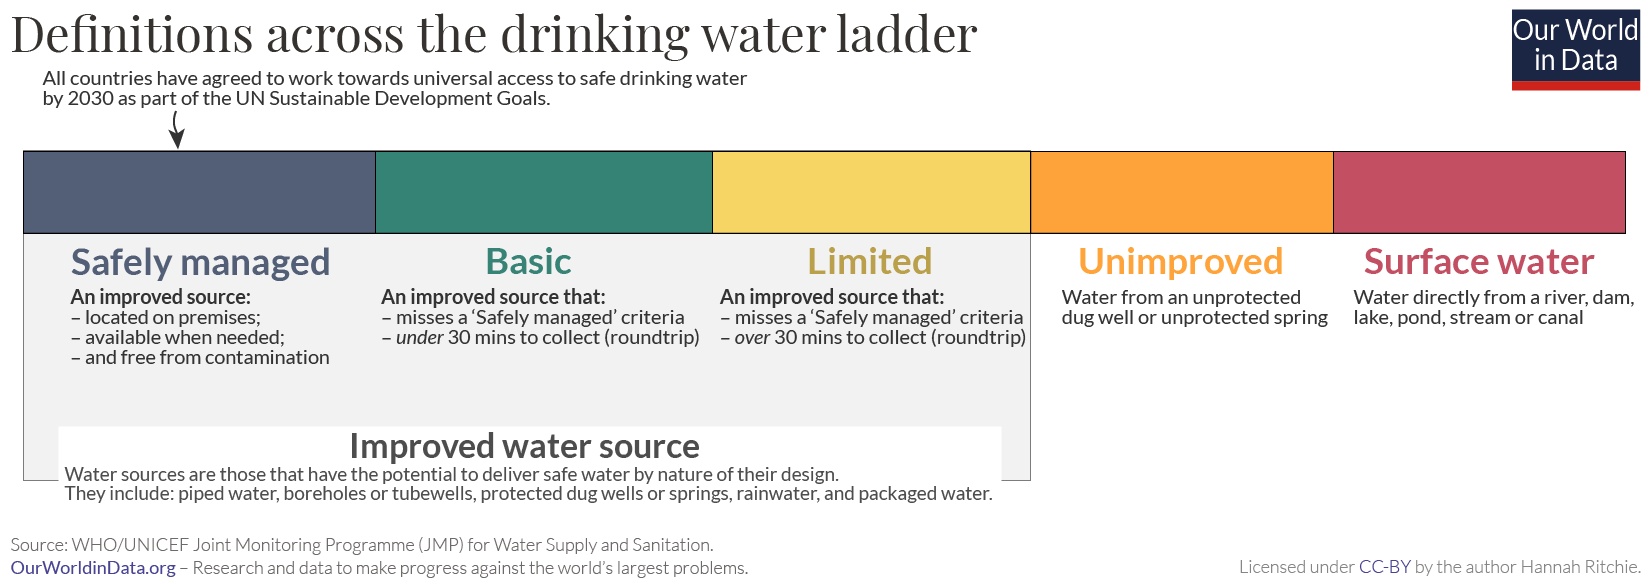 Clean water definitions